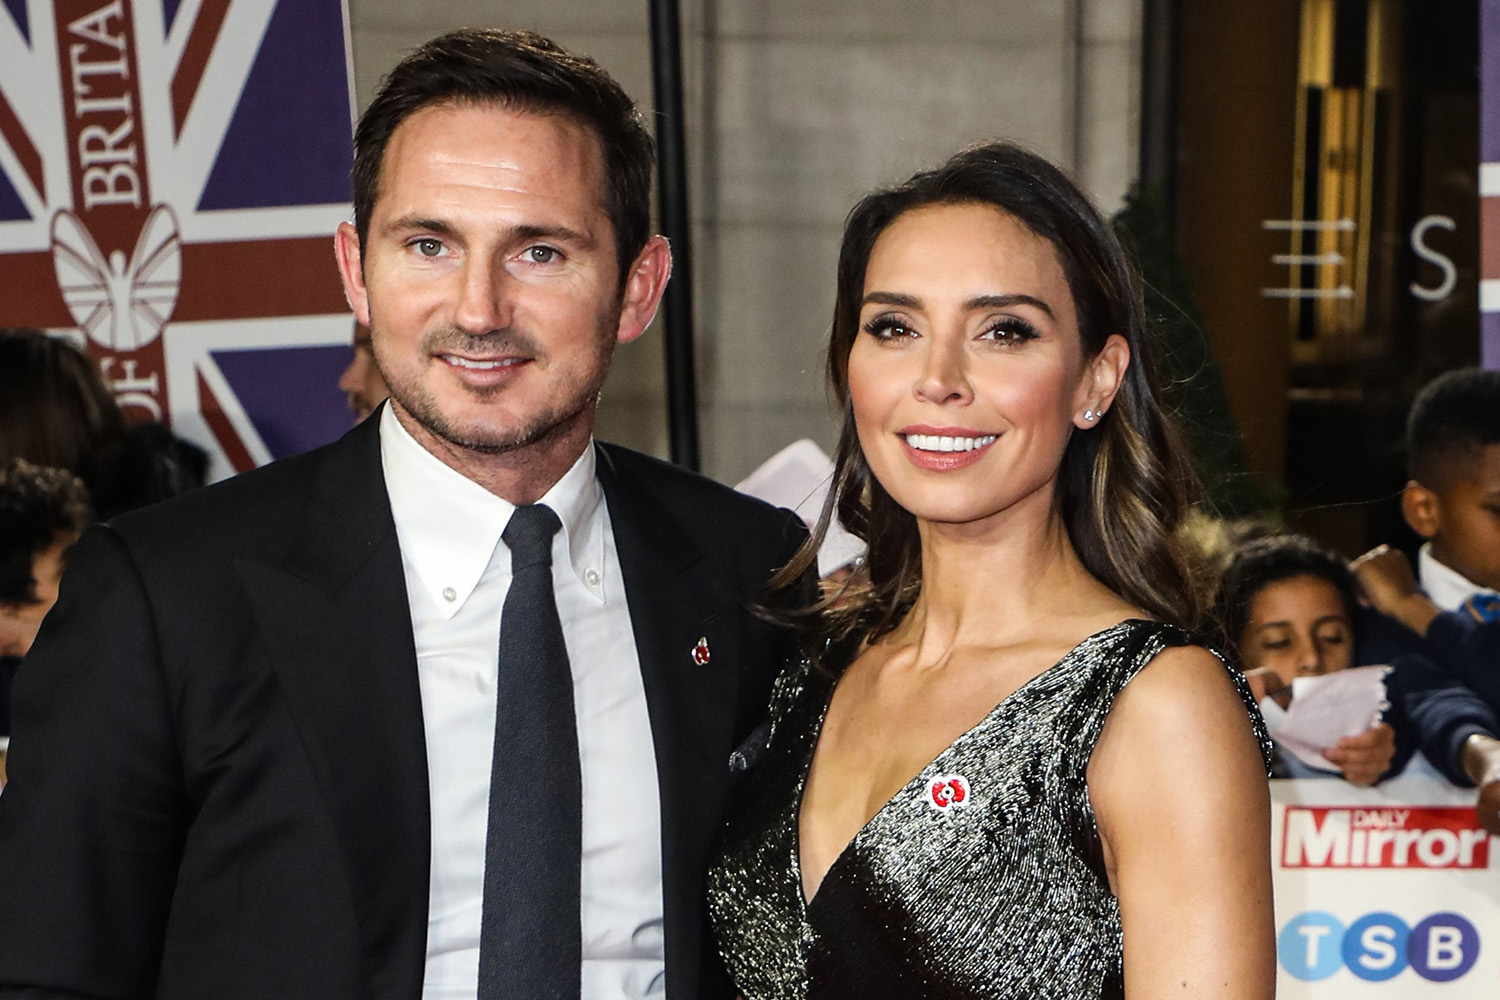 Frank and Christine Lampard 'burgled as thieves target him for fourth time'